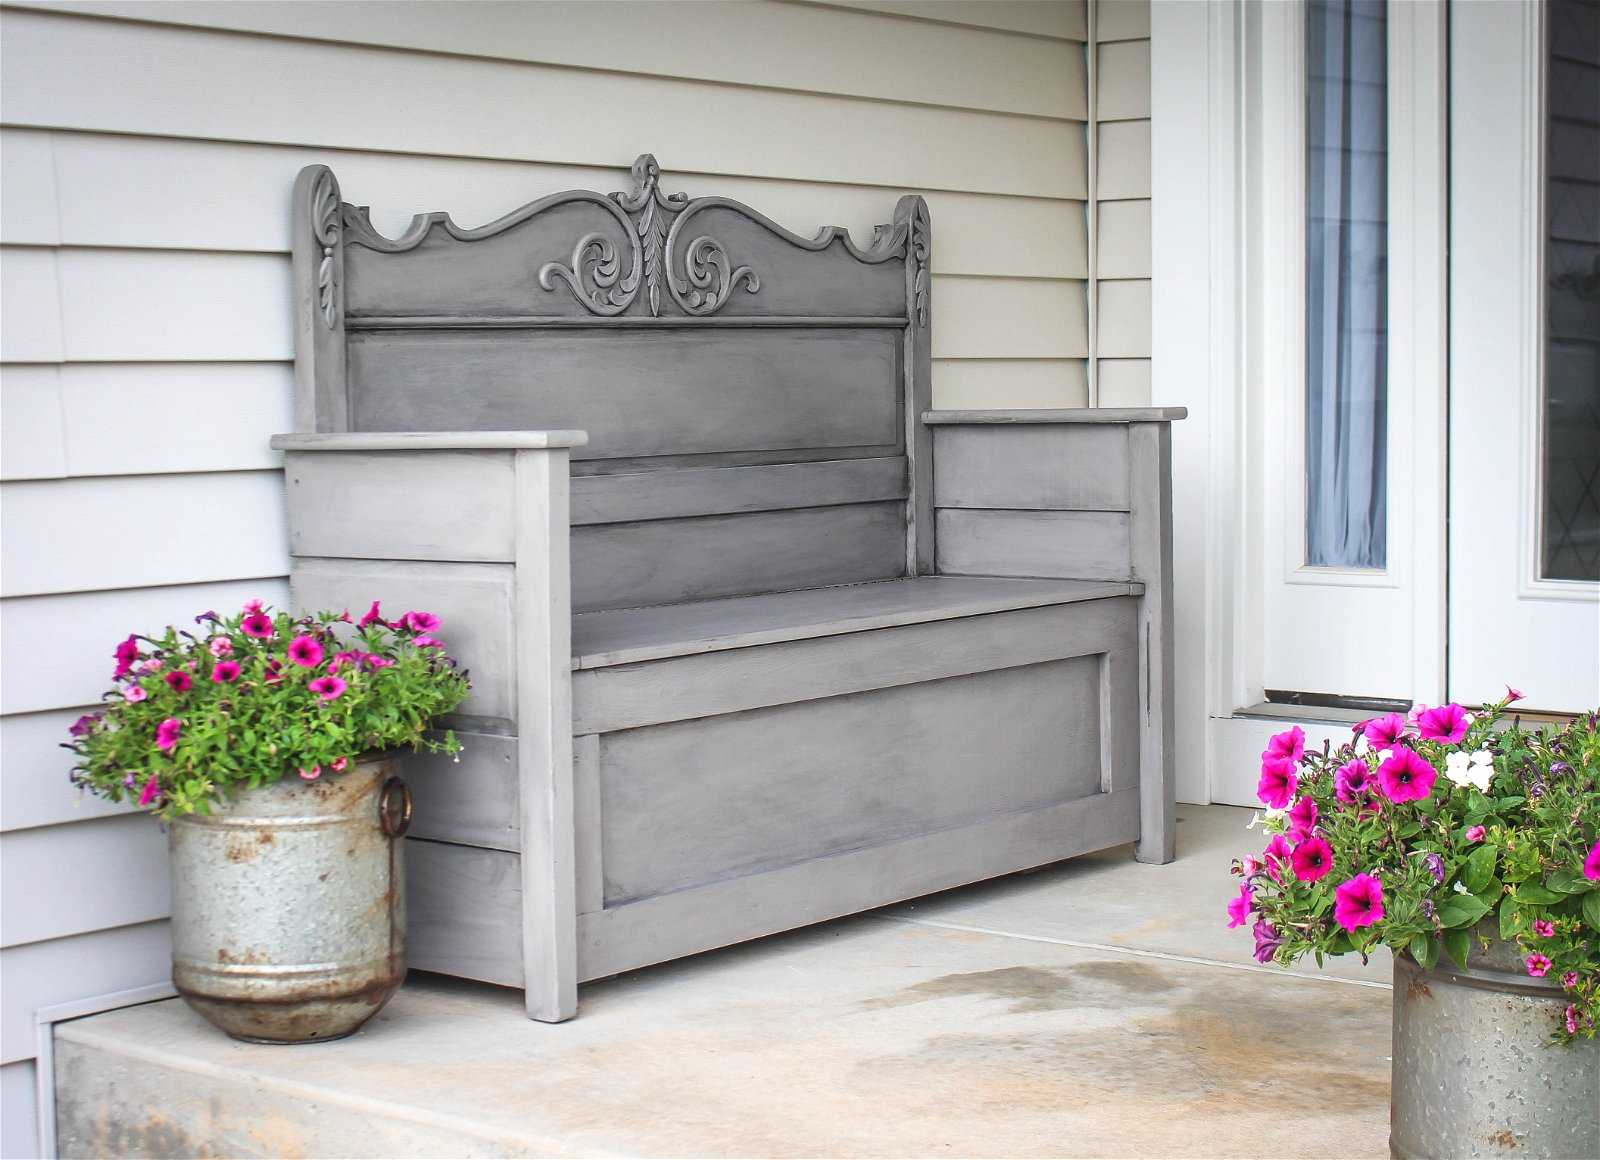 9.SIMPHOME.COM 10 DIY Outdoor Wood Projects Headboard to Bench